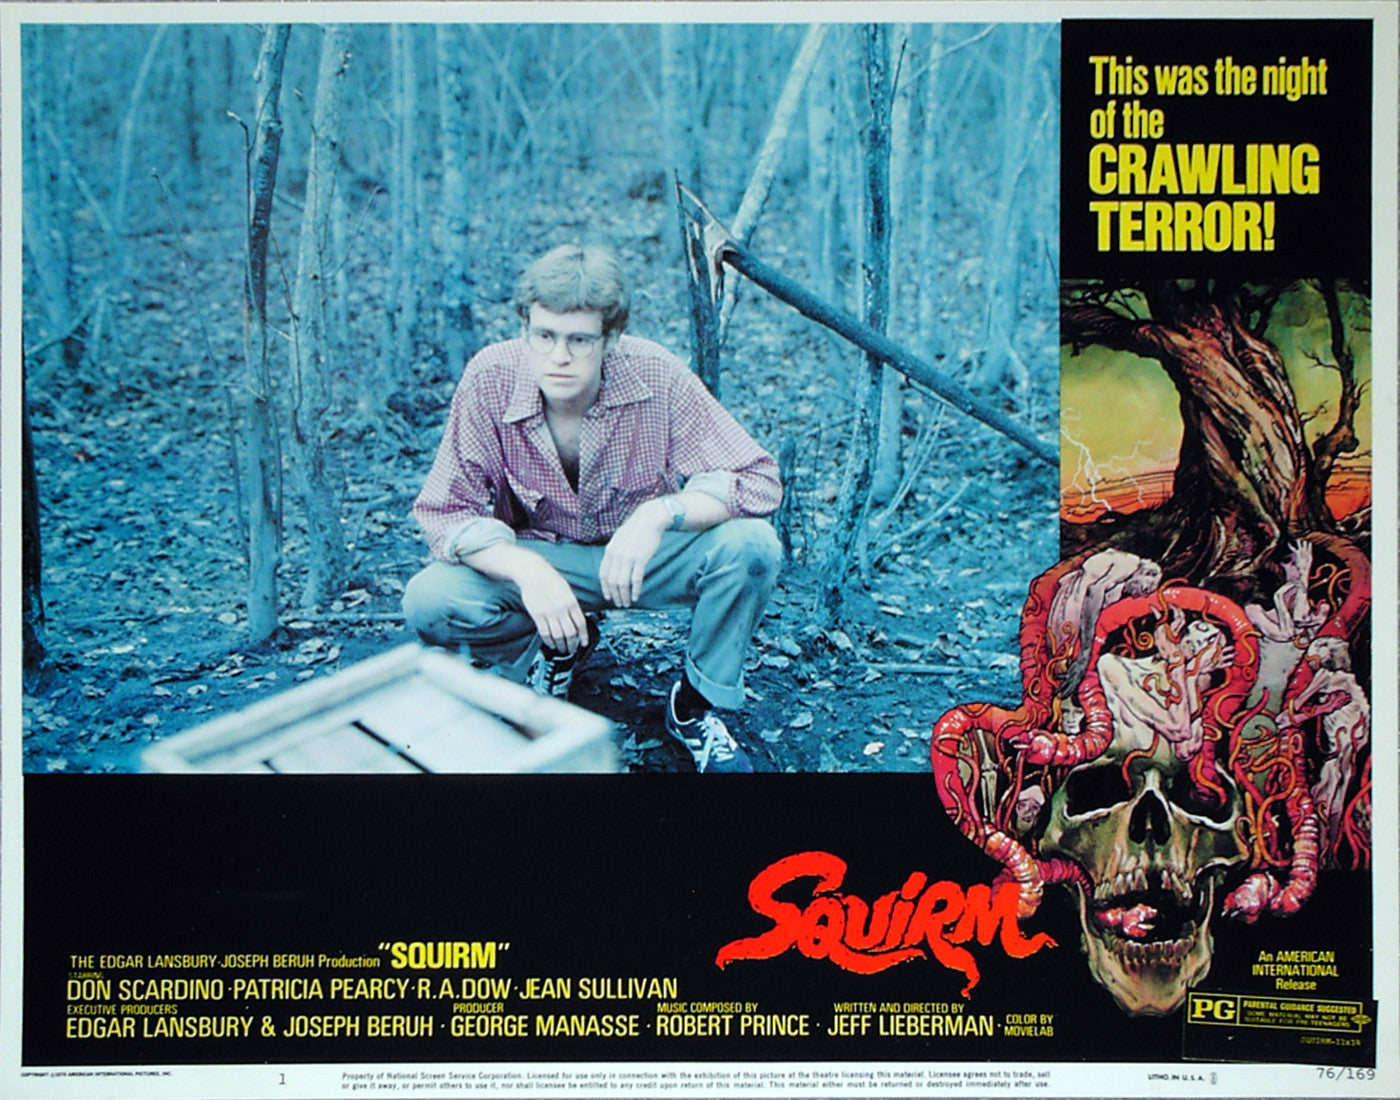 SQUIRM - US lobby card v1